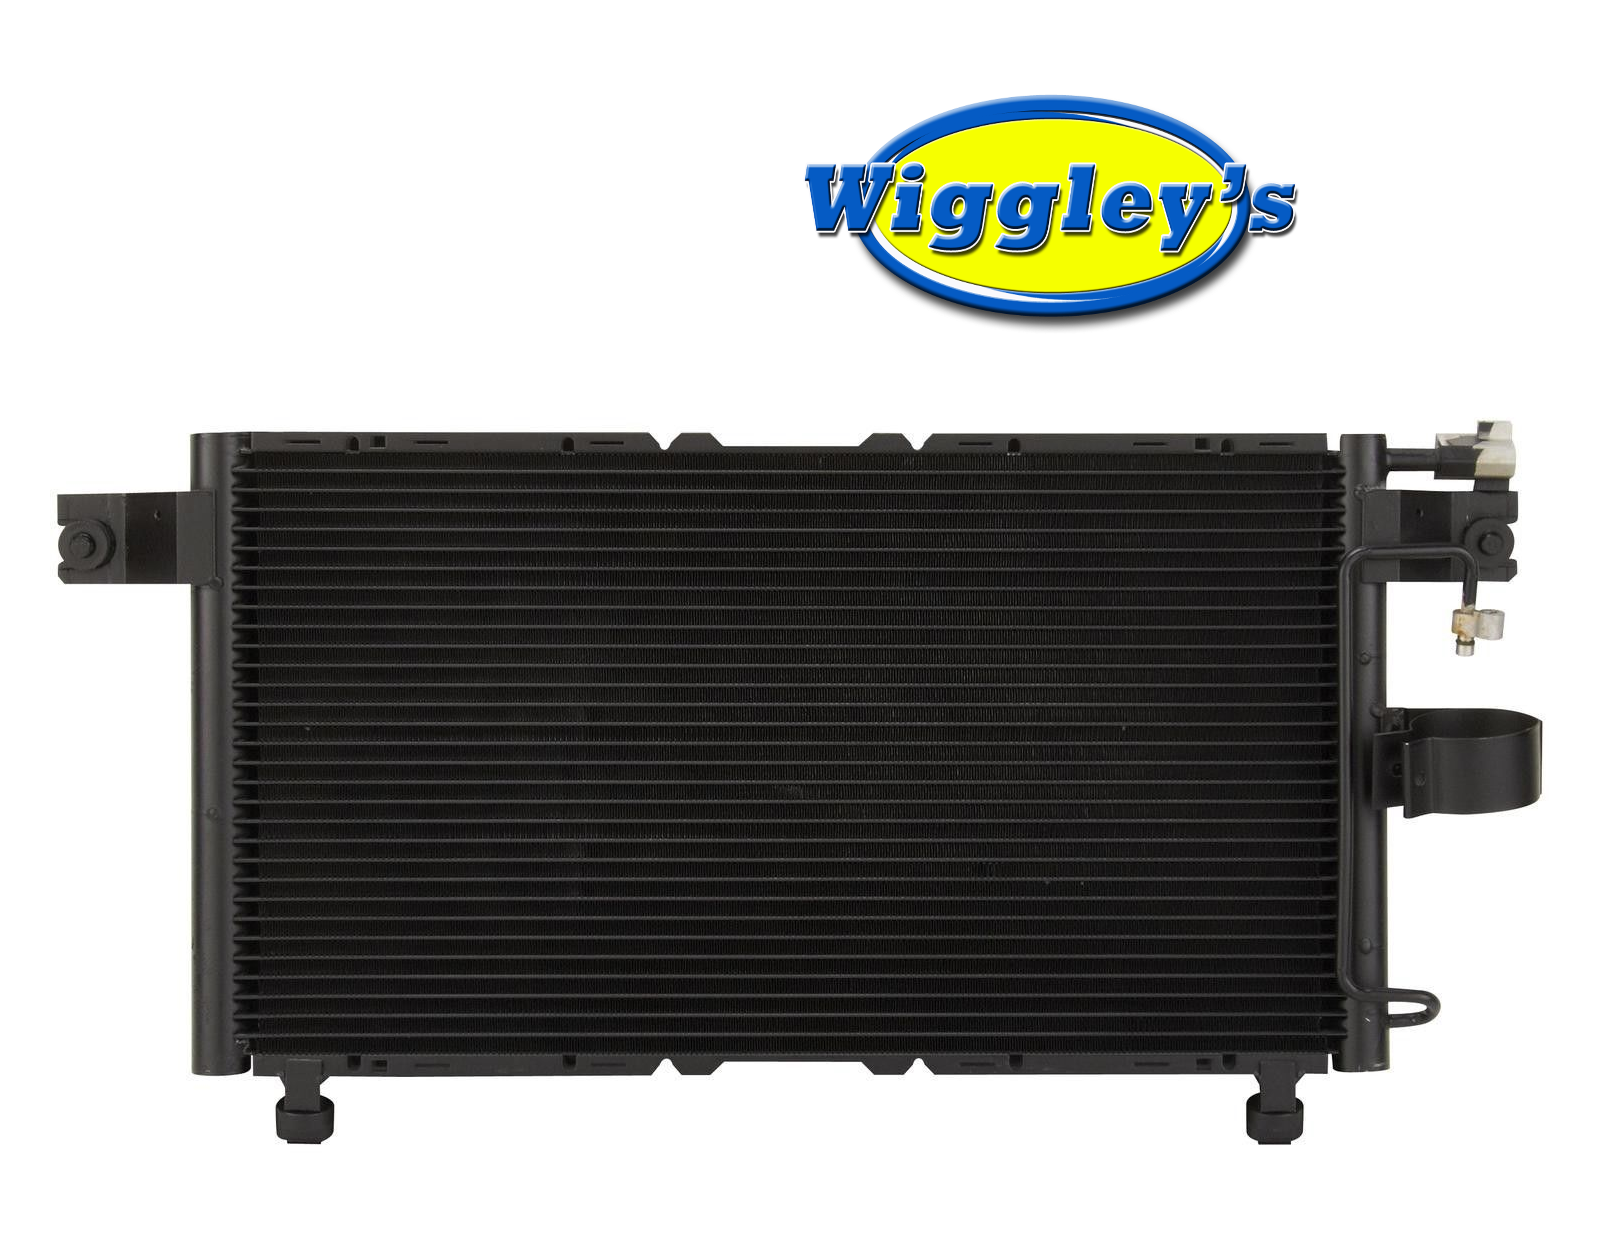 A/C CONDENSER IZ3030131 FOR 02 03 04 ISUZU RODEO RODEO, AXIOM HONDA PASSPORT